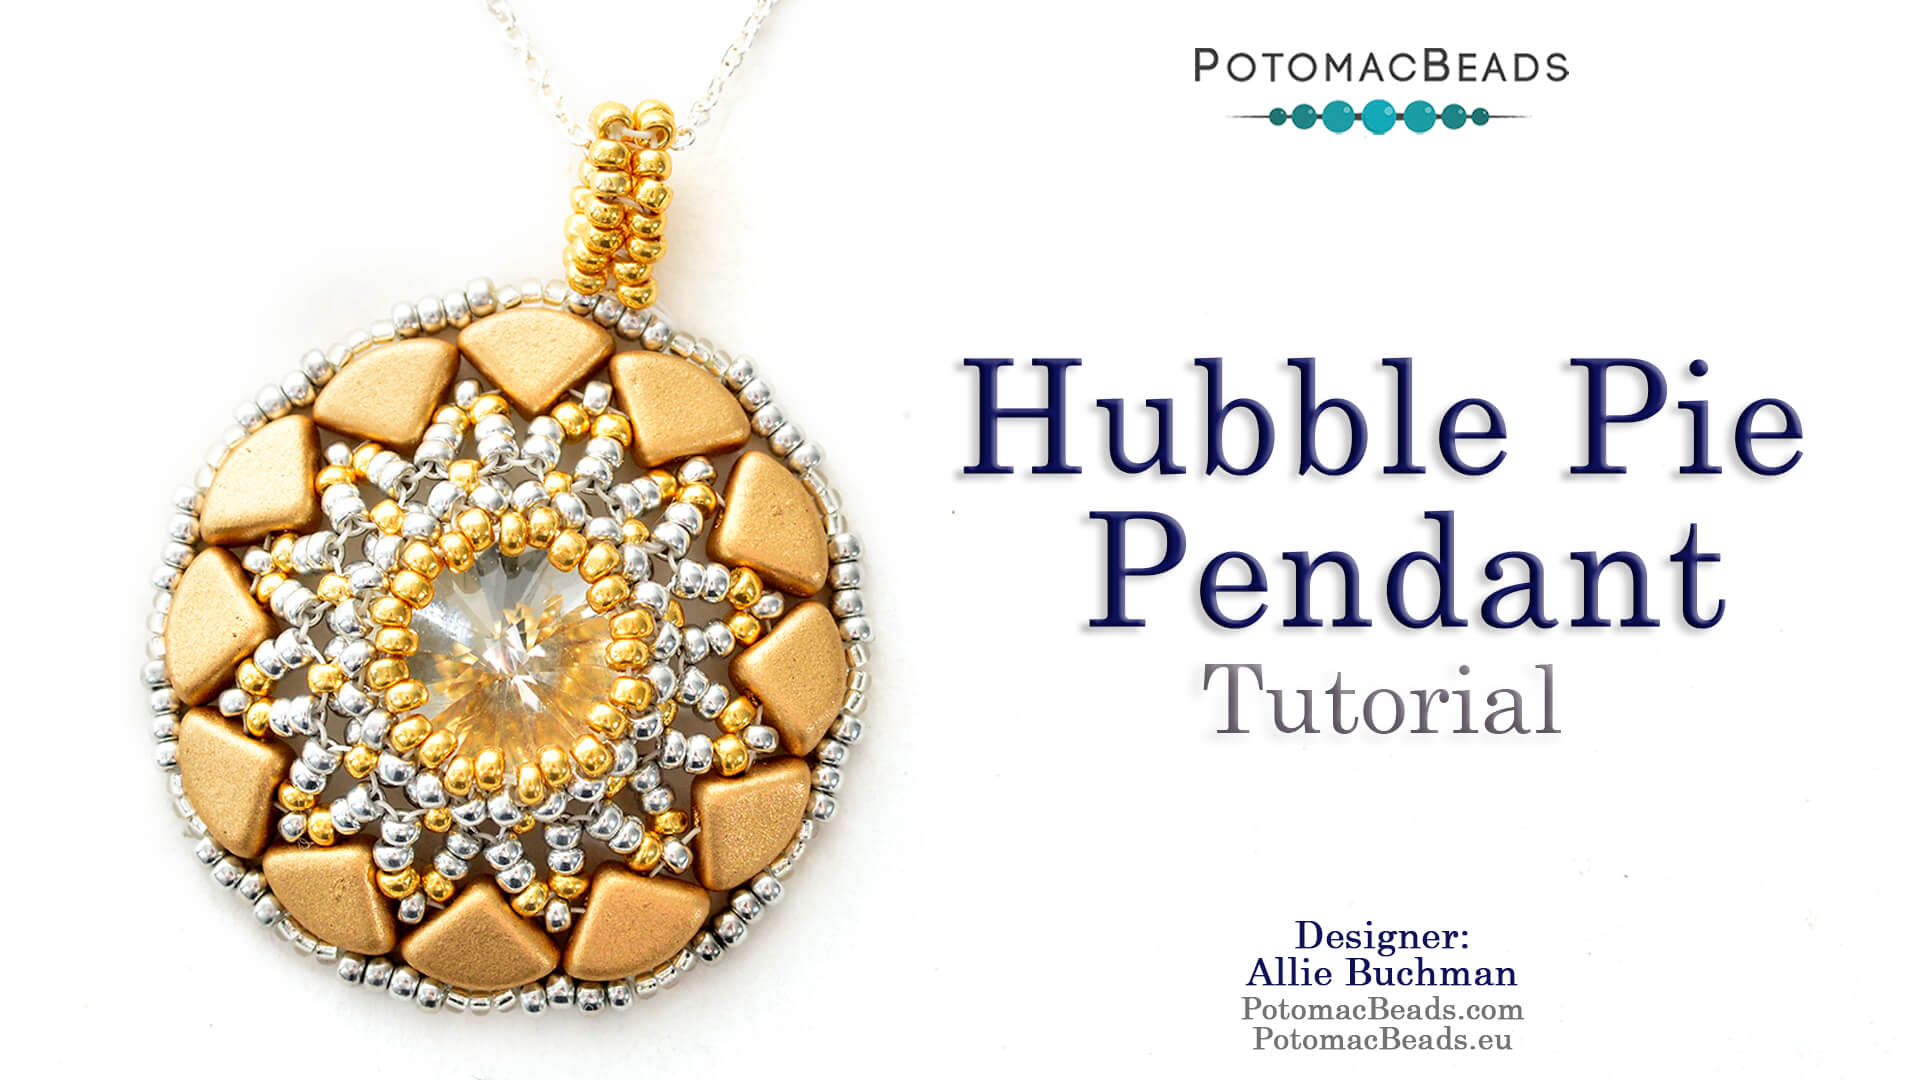 How to Bead Jewelry / Videos Sorted by Beads / QuadBow & PieDuo Bead Videos / Hubble Pie Pendant Tutorial